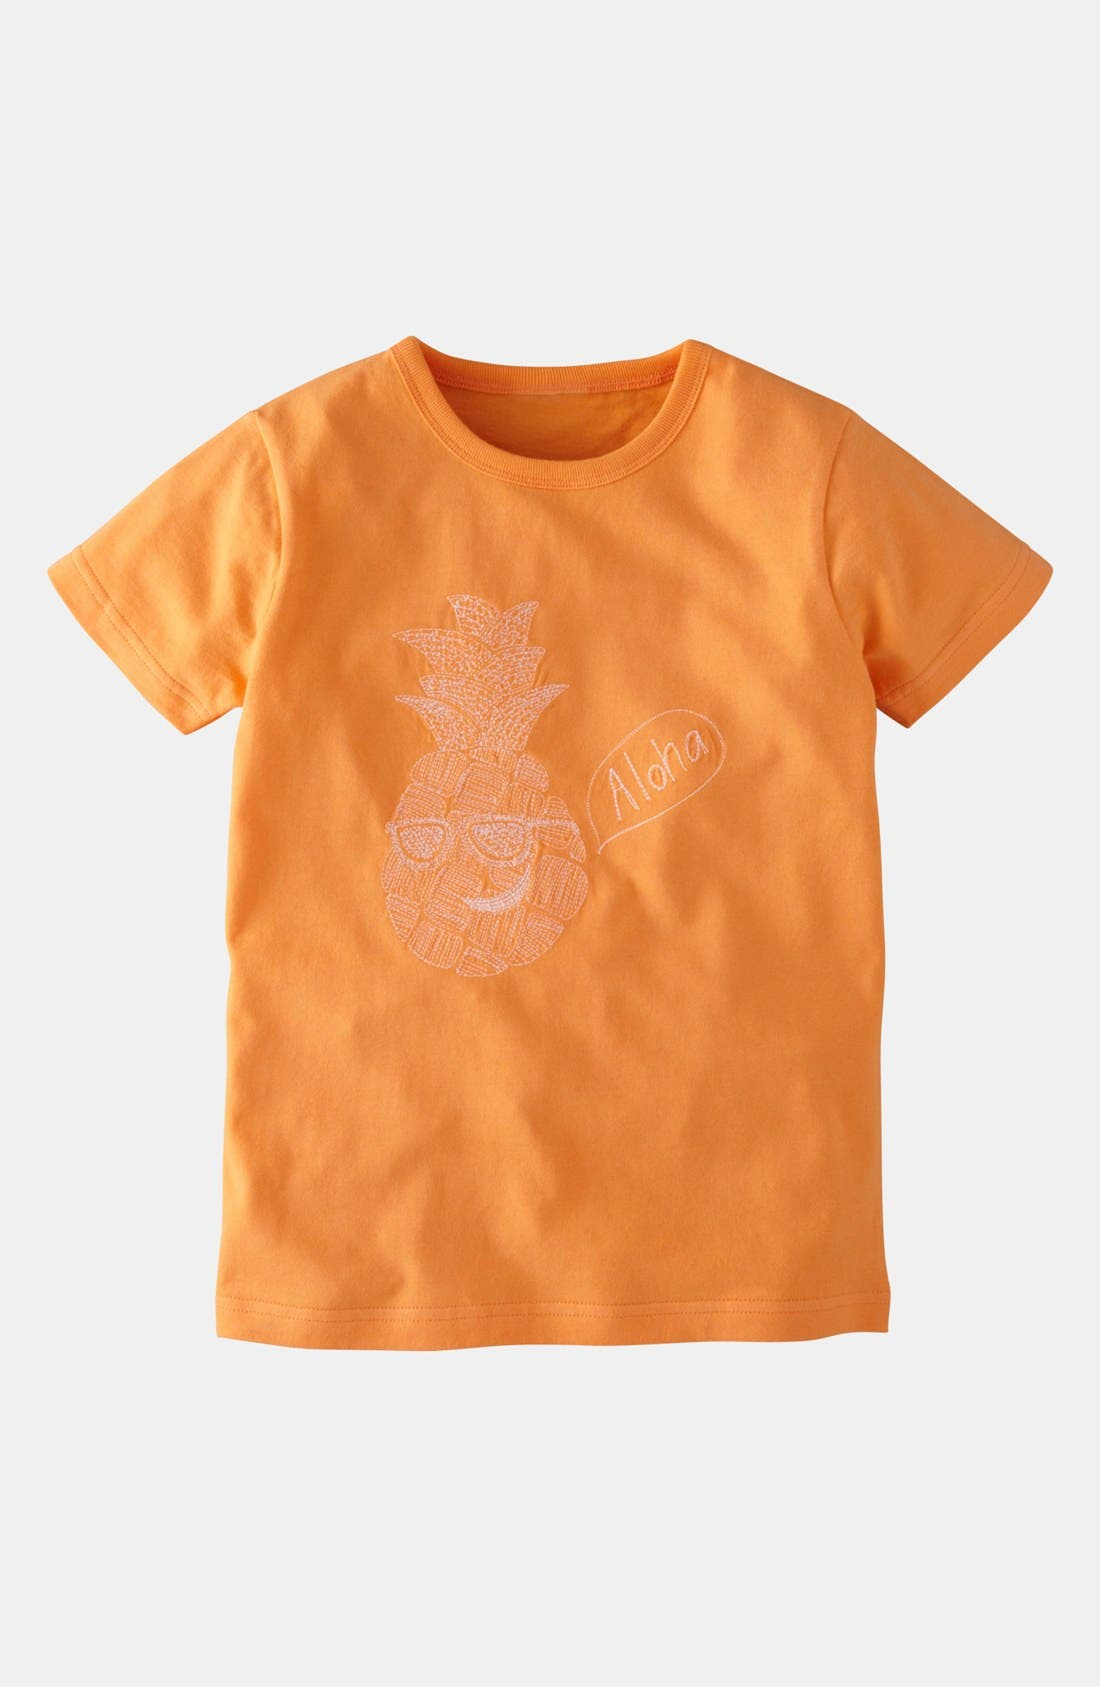 Alternate Image 1 Selected - Mini Boden 'Superstitch' T-Shirt (Little Boys & Big Boys)